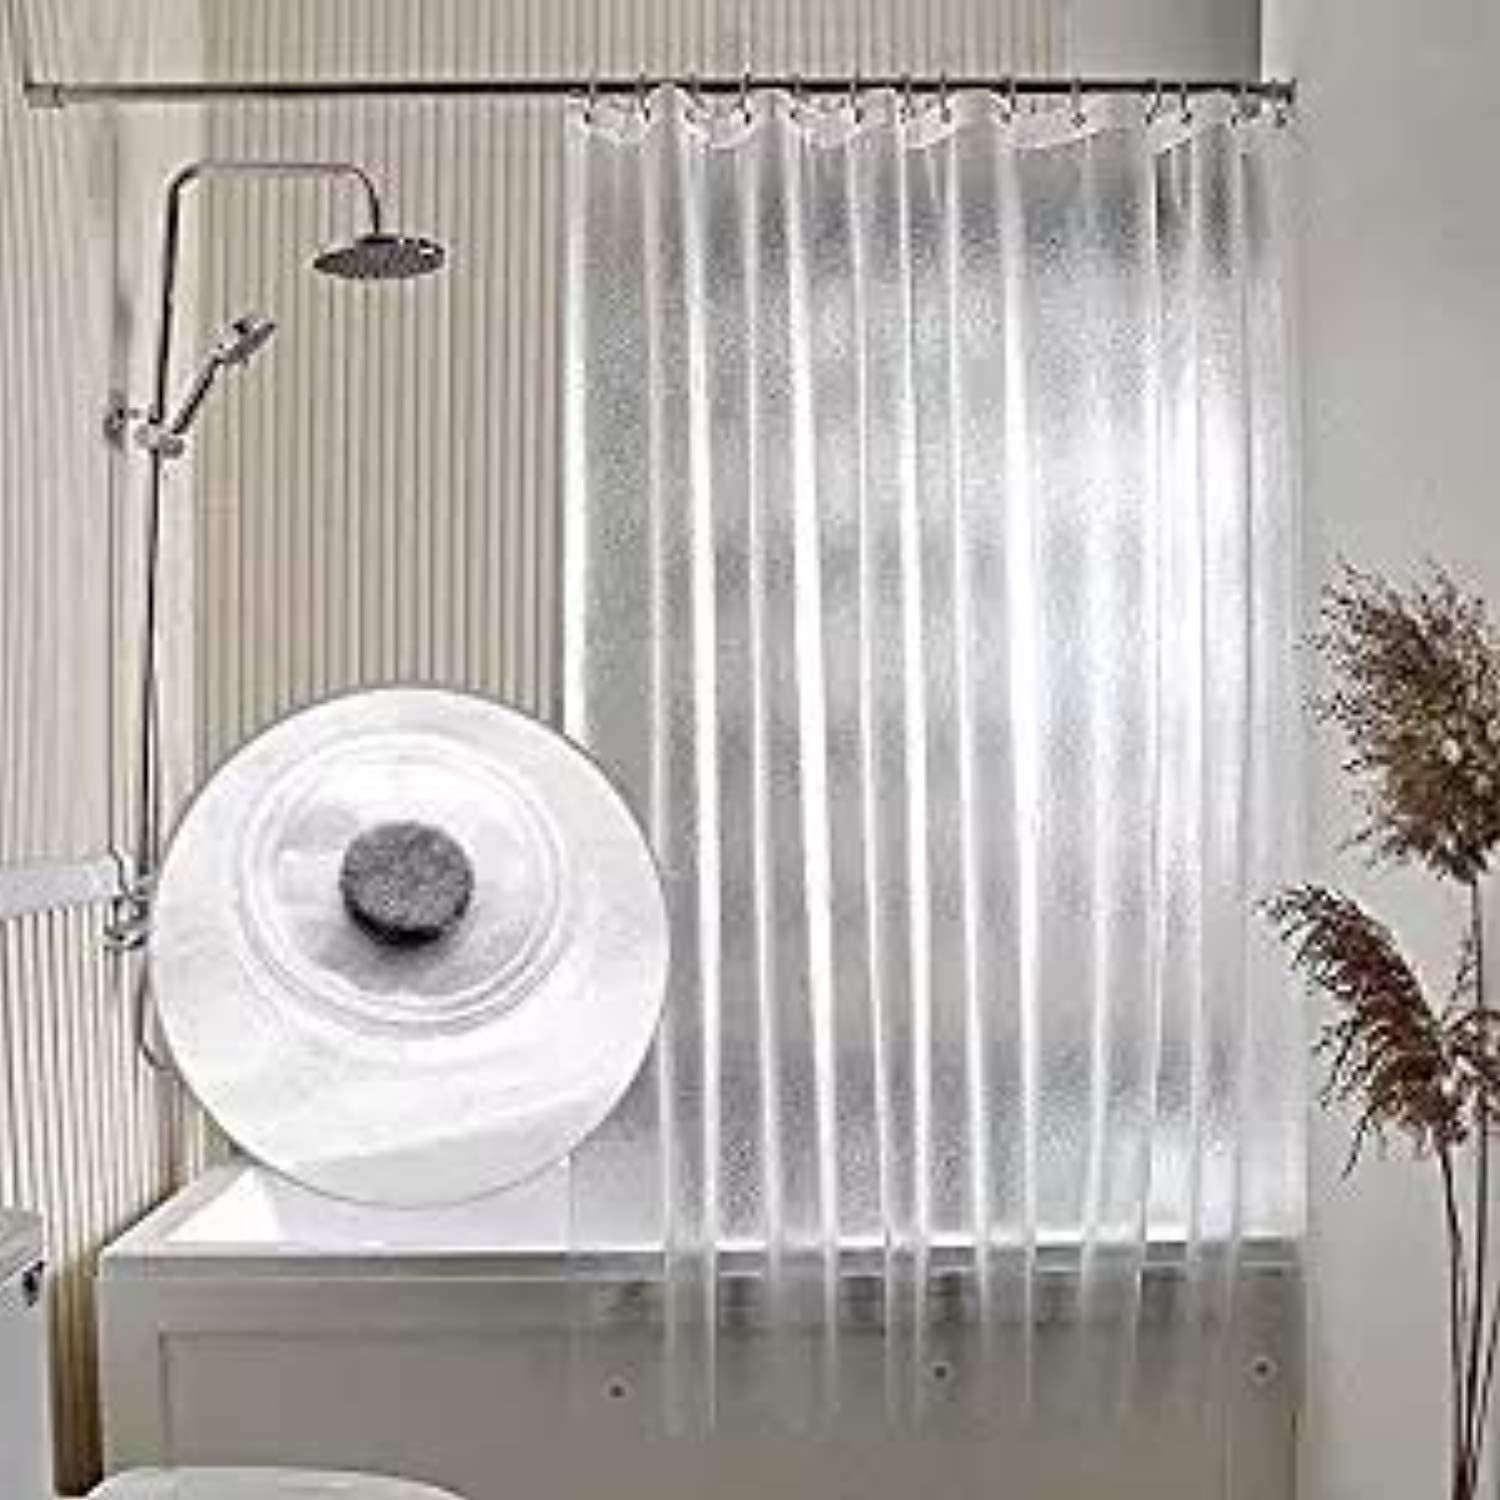 Arflee Peva Bathroom Shower Curtain Liner 15 Gauge Durable Semi